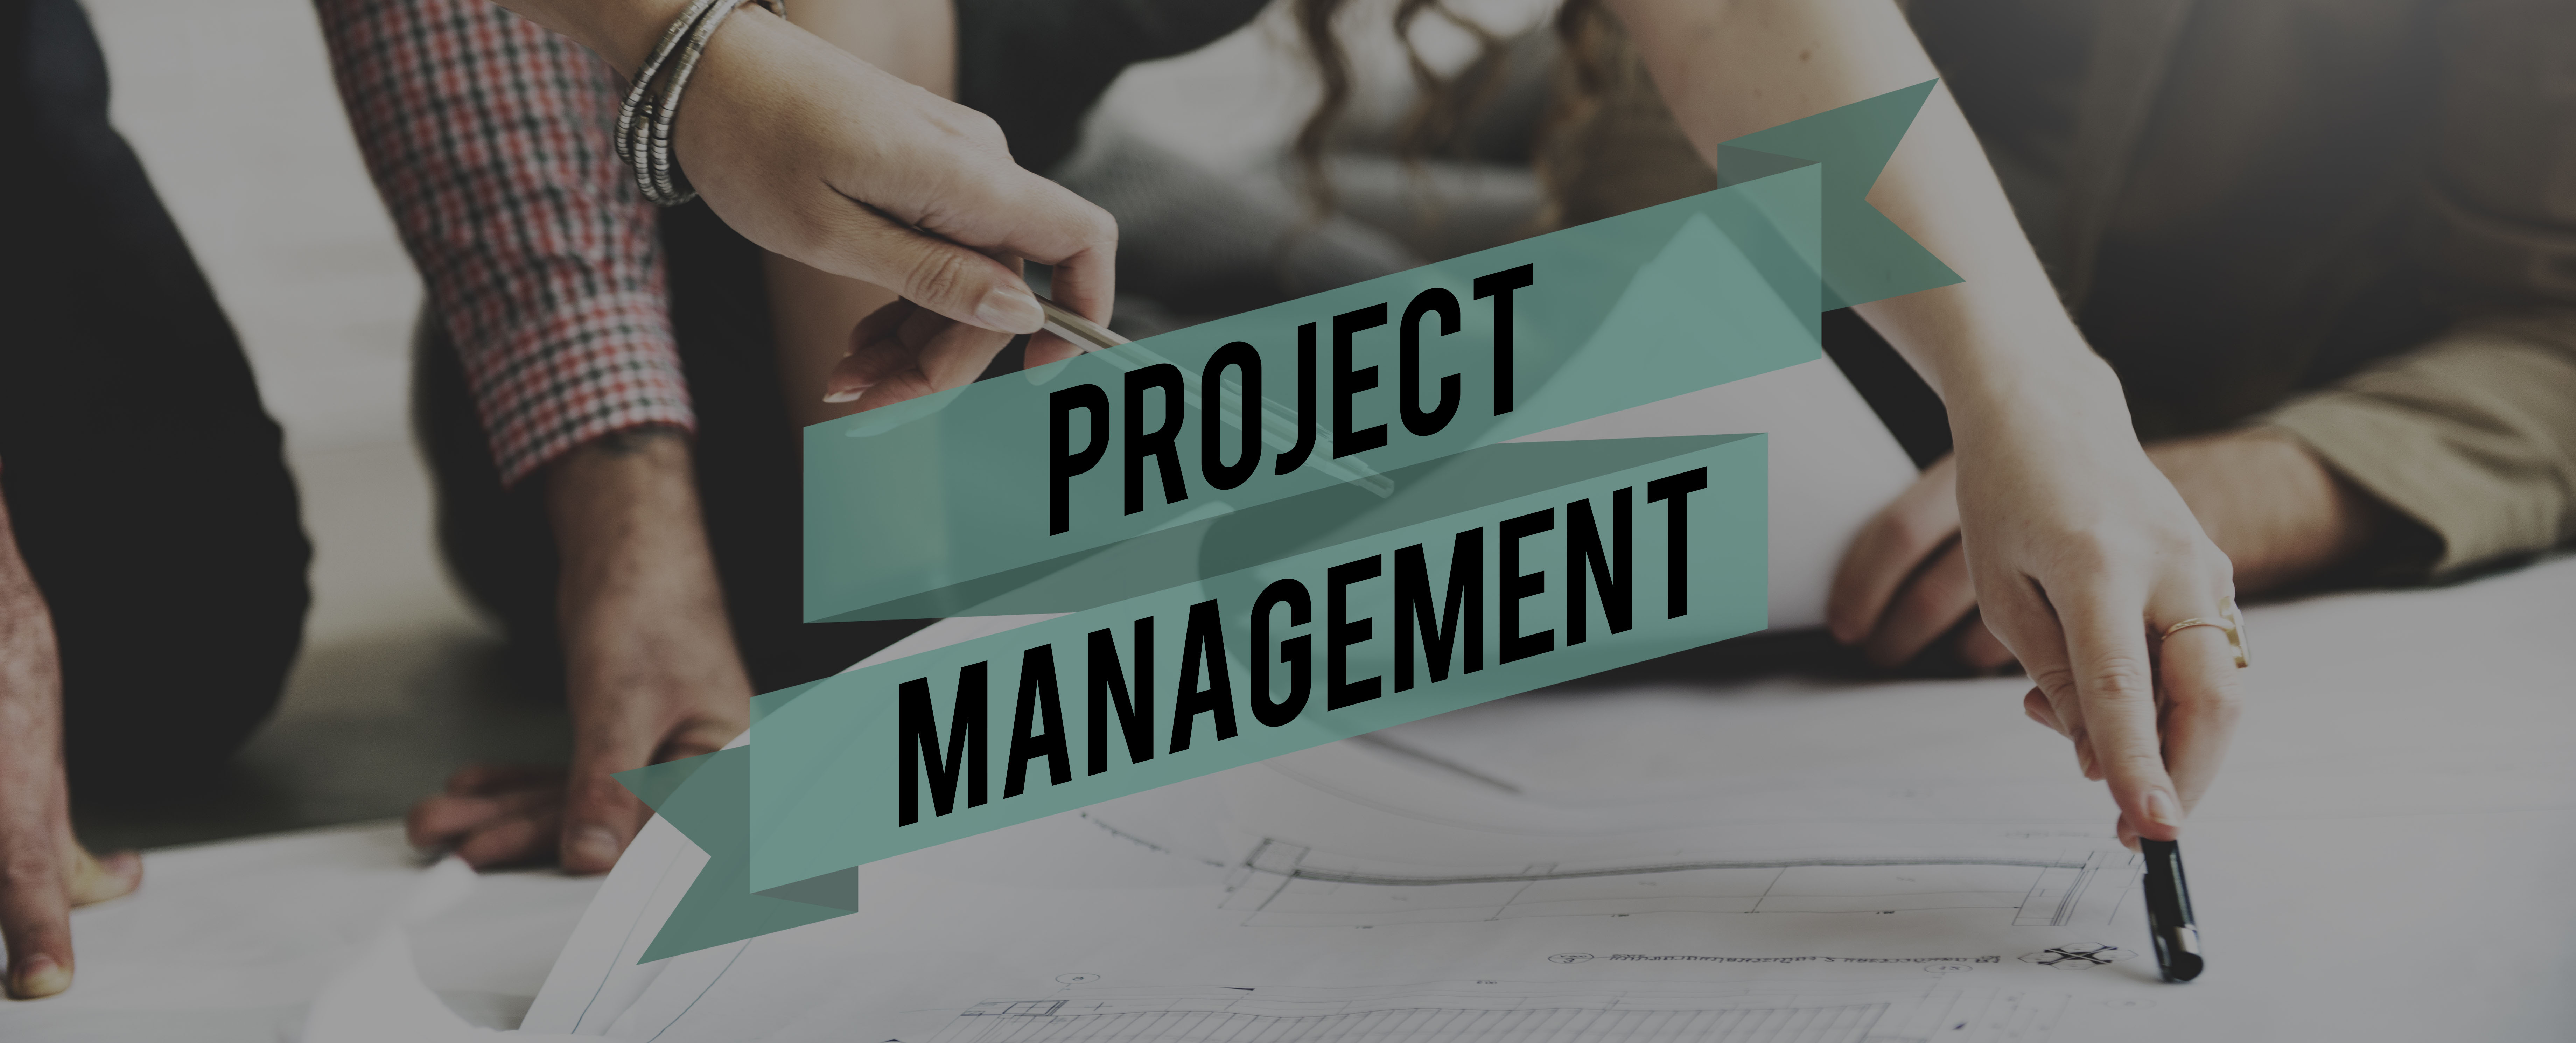 project management essentials Most popular online courses learn the essentials of project management and more it's a great way to prepare for the certified associate in project management.